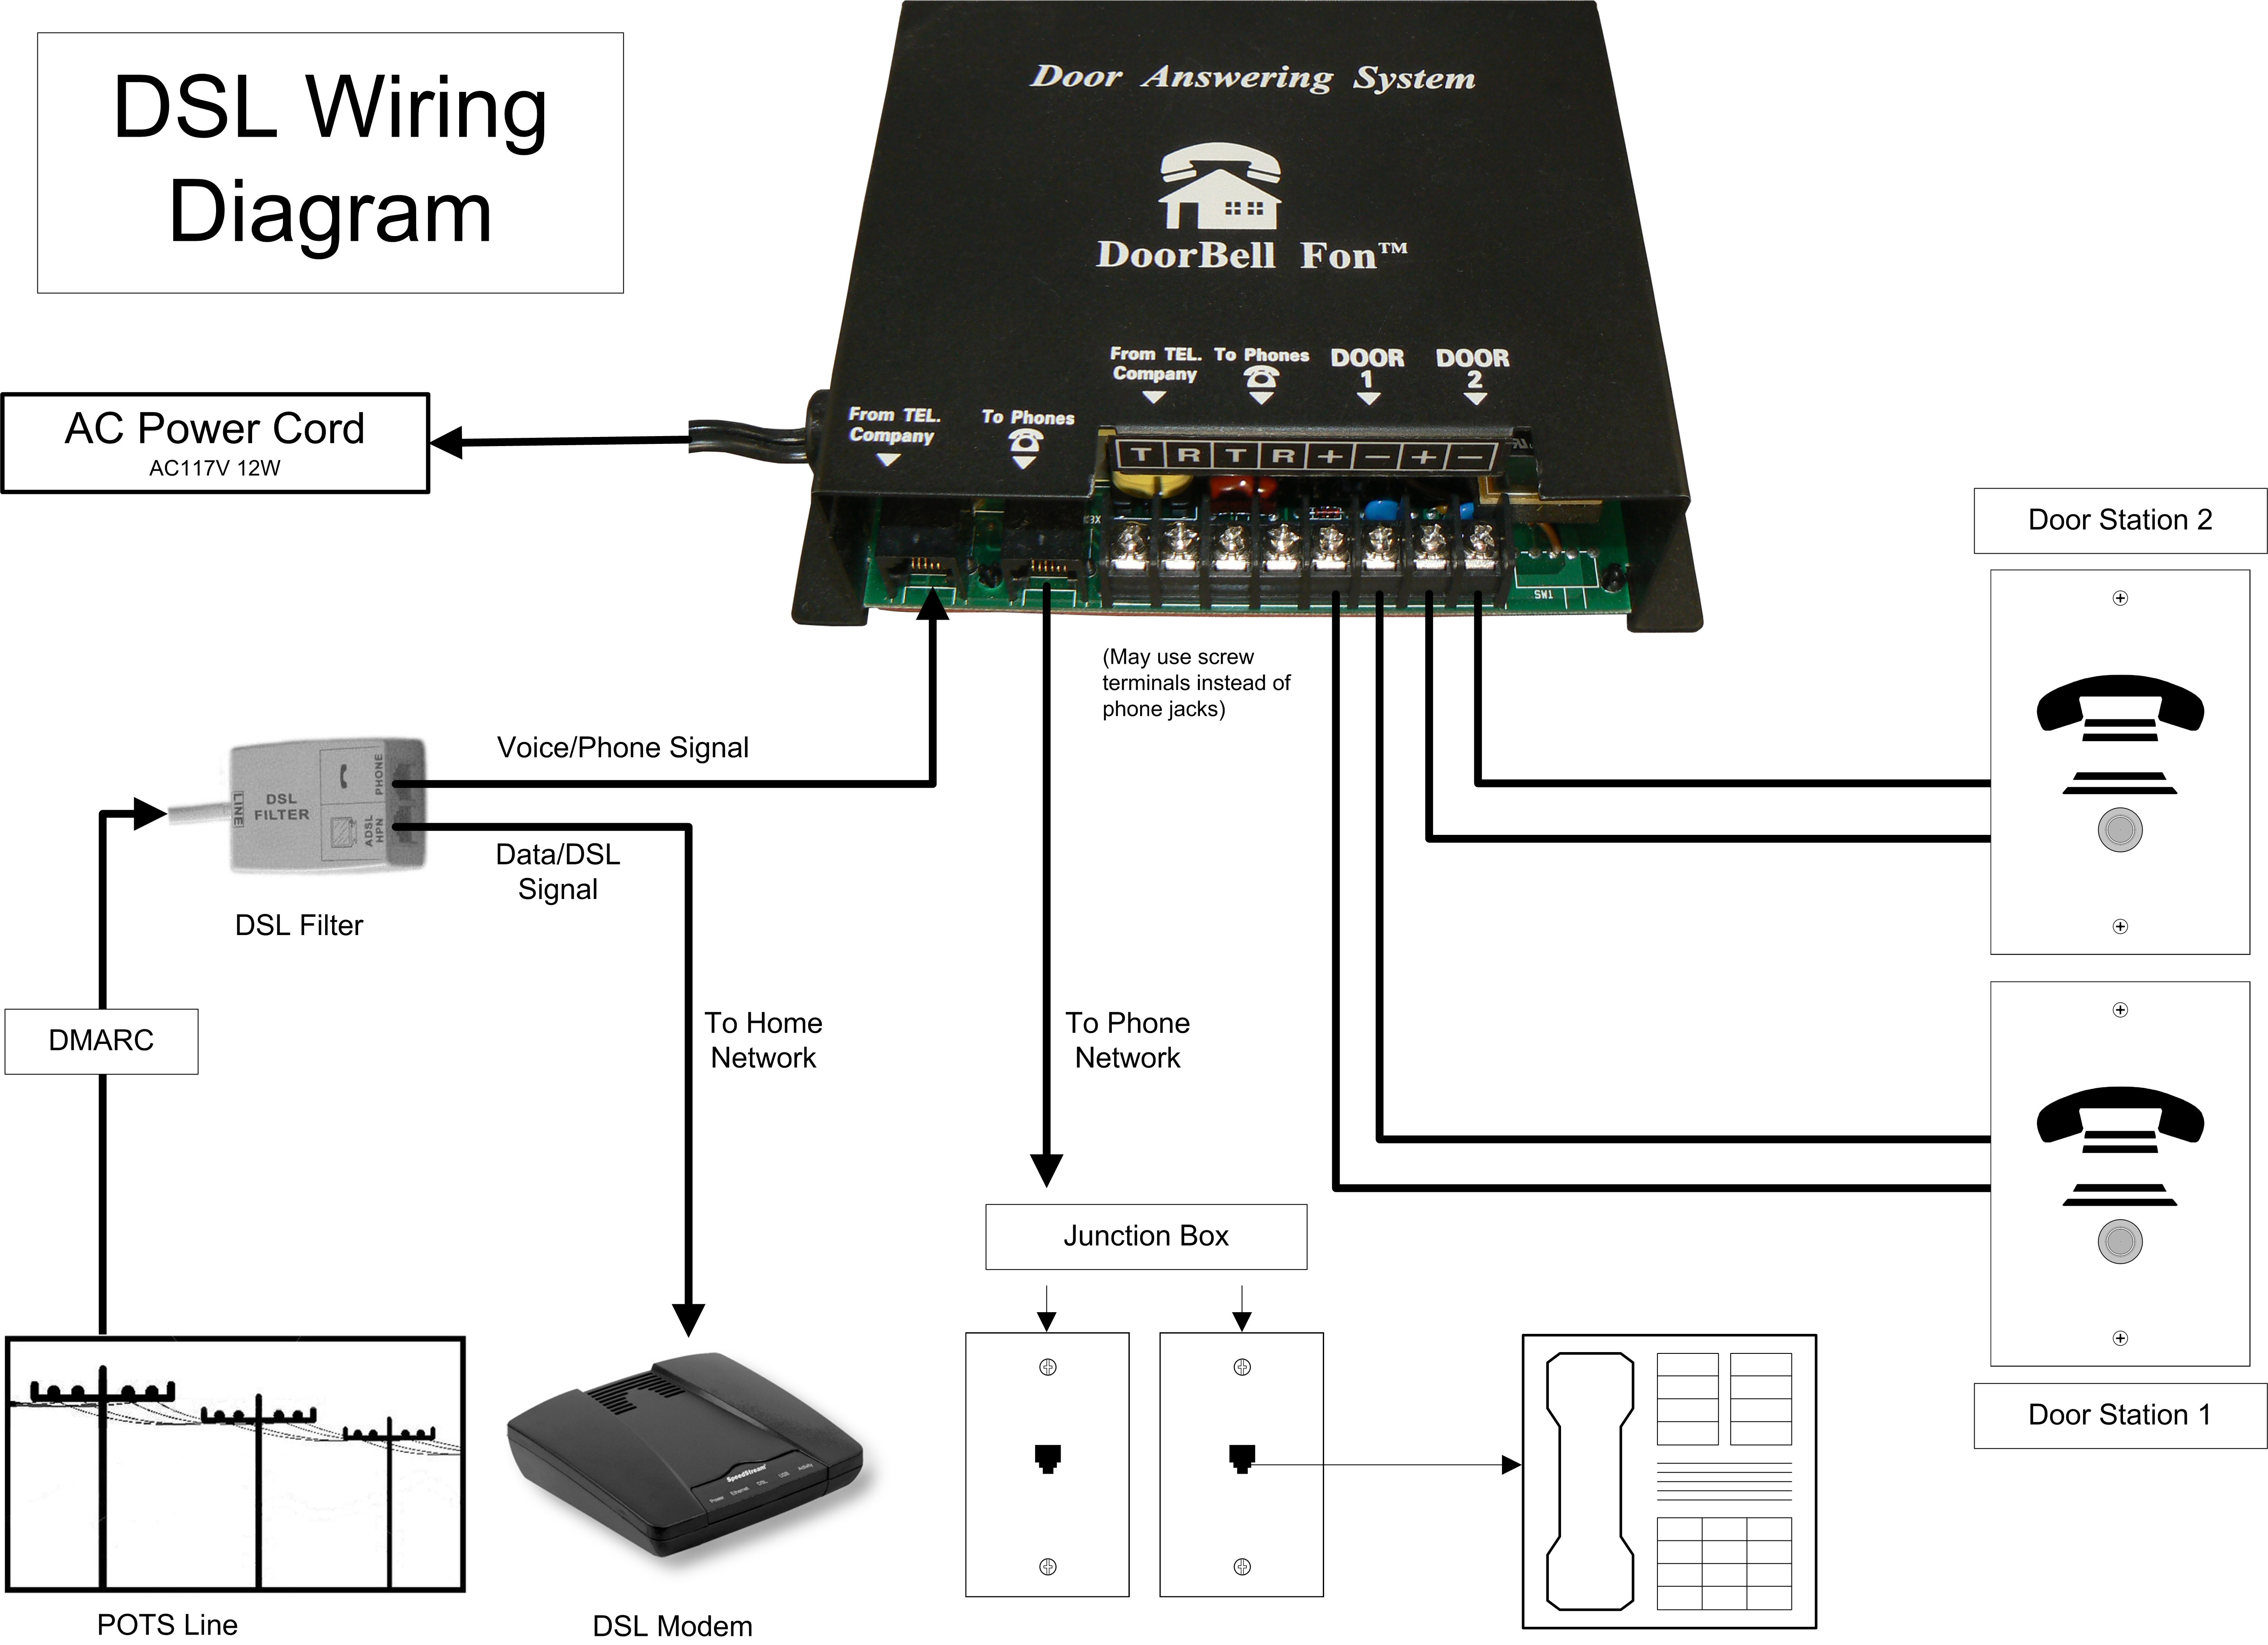 4 Wire Phone Jack Wiring Diagram Trusted Diagrams Rj11 Cisco Dsl Library Of U2022 Cat 5